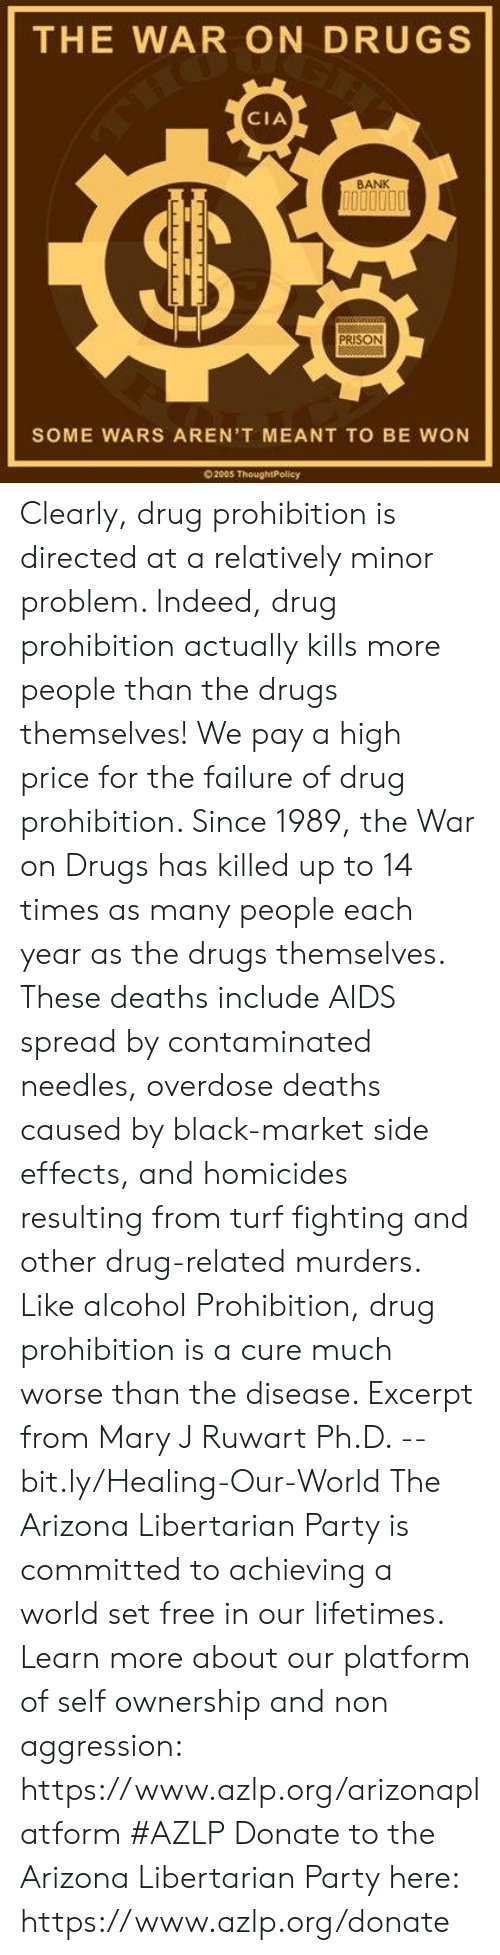 mary j: THE WAR ON DRUGS  CIA  BANK  PRISON  SOME WARS AREN'T MEANT TO BE WON  200S ThoughtPolicy Clearly, drug prohibition is directed at a relatively minor problem. Indeed, drug prohibition actually kills more people than the drugs themselves! We pay a high price for the failure of drug prohibition. Since 1989, the War on Drugs has killed up to 14 times as many people each year as the drugs themselves. These deaths include AIDS spread by contaminated needles, overdose deaths caused by black-market side effects, and homicides resulting from turf fighting and other drug-related murders. Like alcohol Prohibition, drug prohibition is a cure much worse than the disease.   Excerpt from Mary J Ruwart Ph.D. -- bit.ly/Healing-Our-World  The Arizona Libertarian Party is committed to achieving a world set free in our lifetimes. Learn more about our platform of self ownership and non aggression: https://www.azlp.org/arizonaplatform  #AZLP  Donate to the Arizona Libertarian Party here: https://www.azlp.org/donate